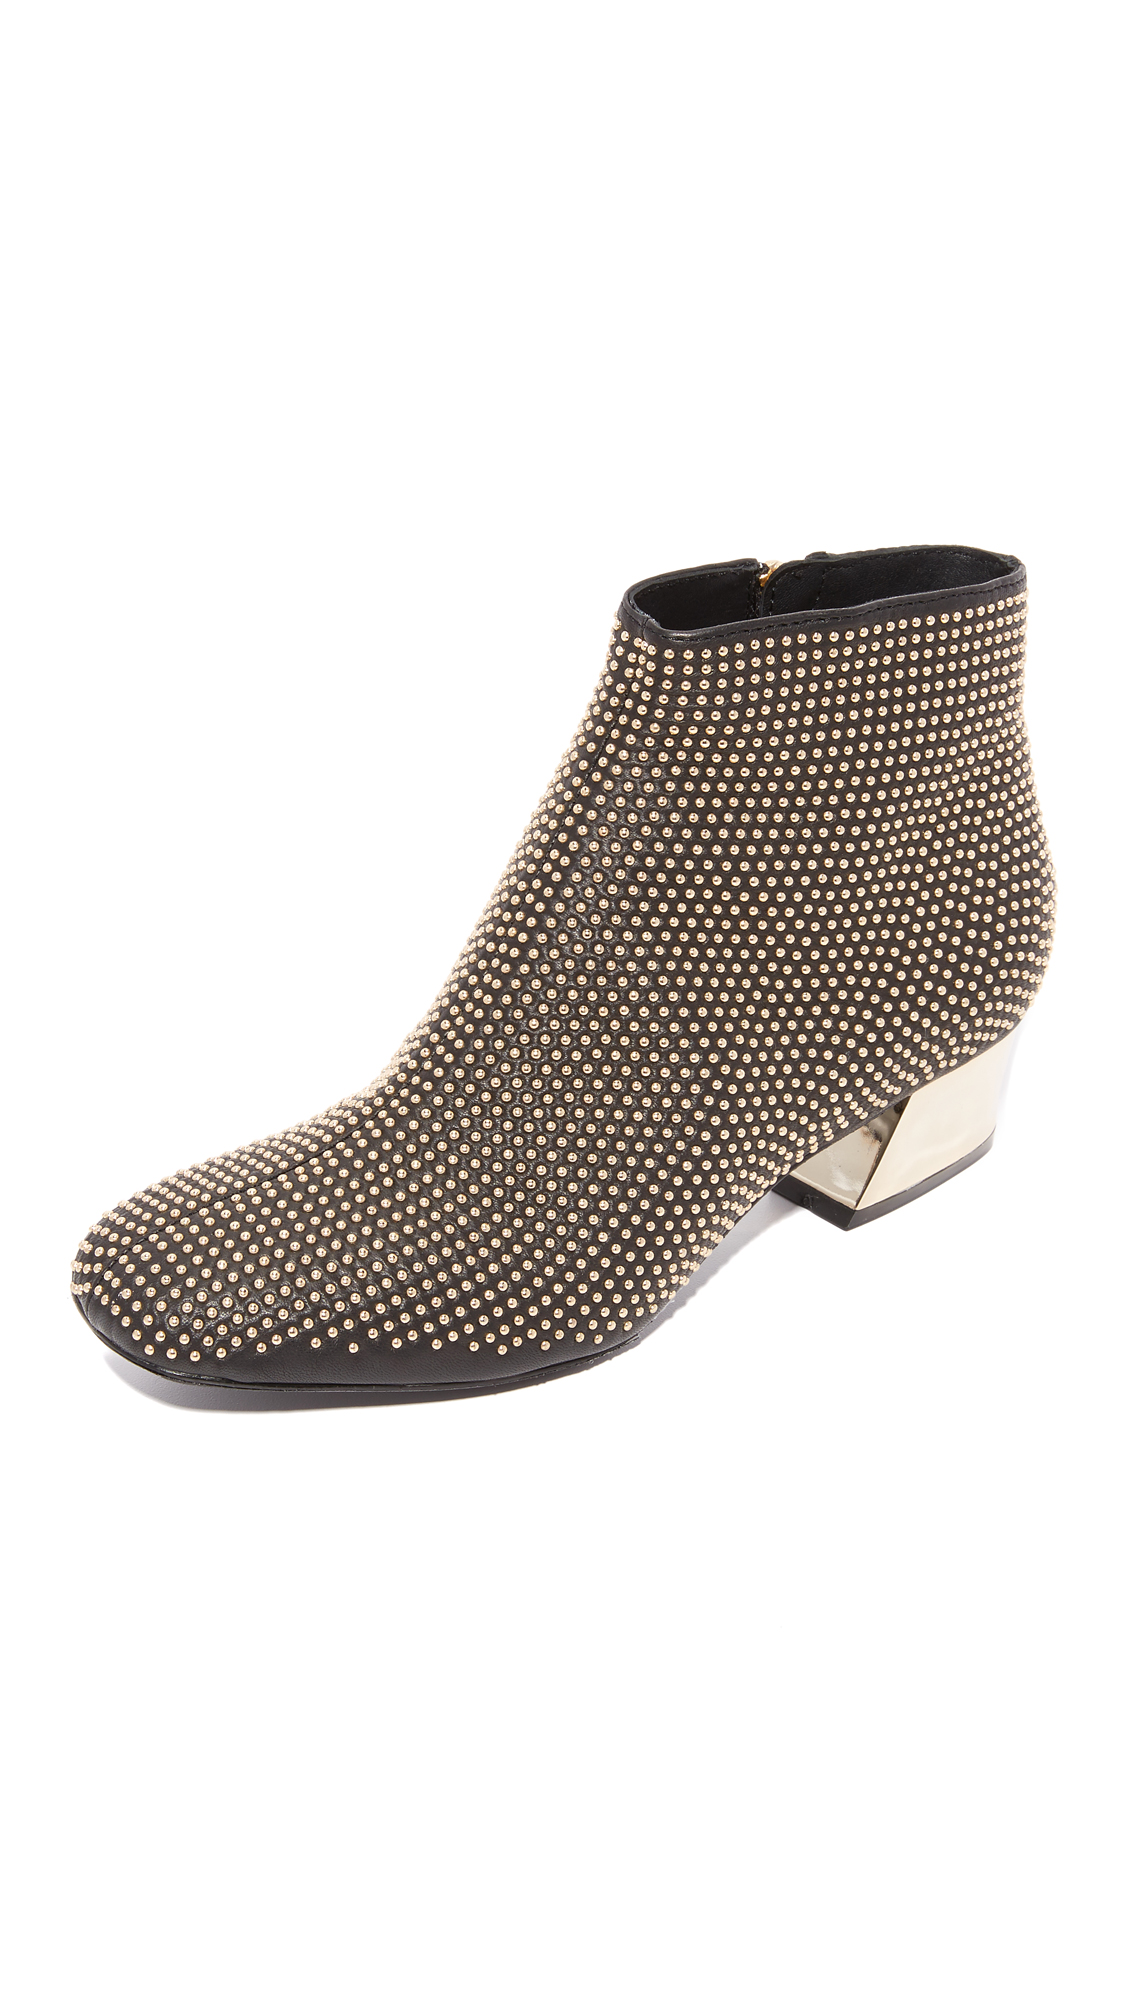 Alice + Olivia Paxton Studded Booties - Black/Brushed Pale Gold